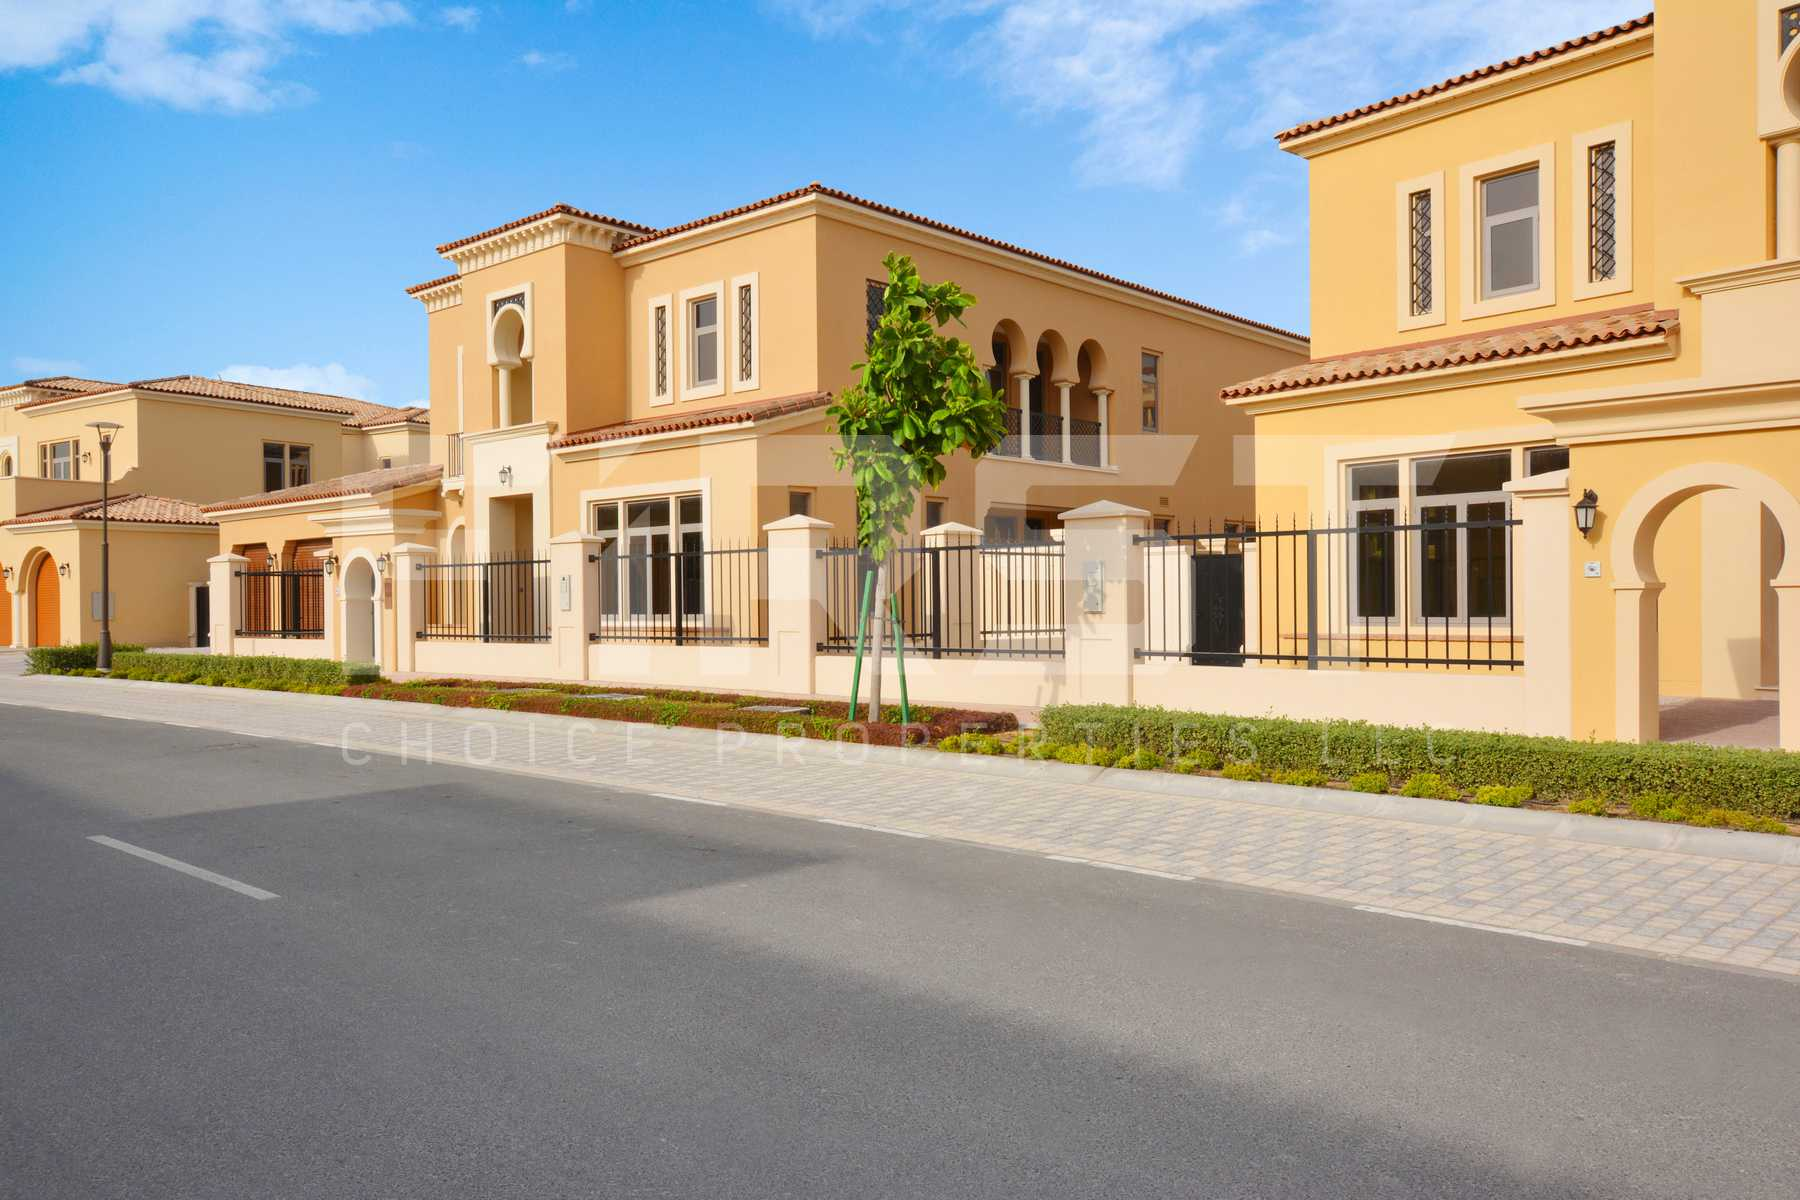 External Photo of Delux 5 Bedroom Villa in Saadiyat Beach Villas Saadiyat Island Abu Dhabi UAE (6).jpg